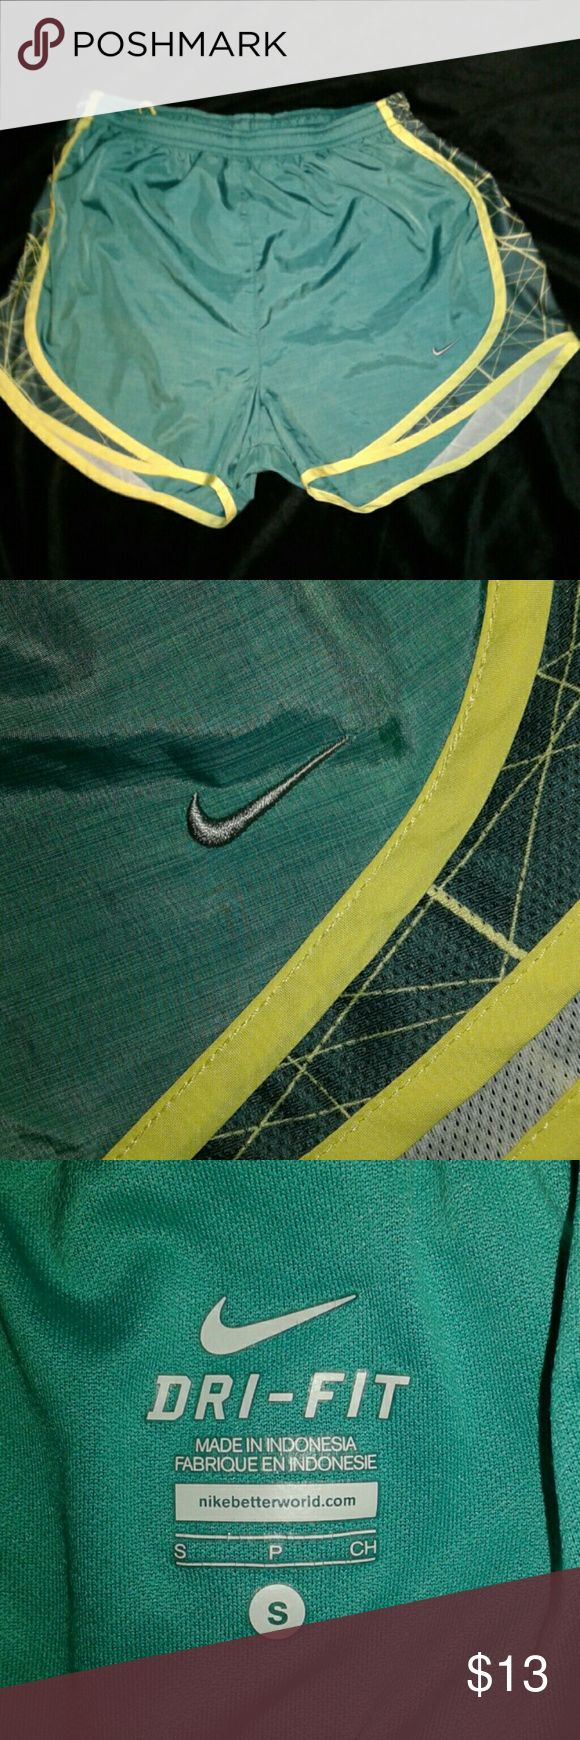 EUC condition Nike drifit shorts Excellent condition size small, green and neon yellow, Nike drifit shorts, no holes,snags or stains Nike Shorts